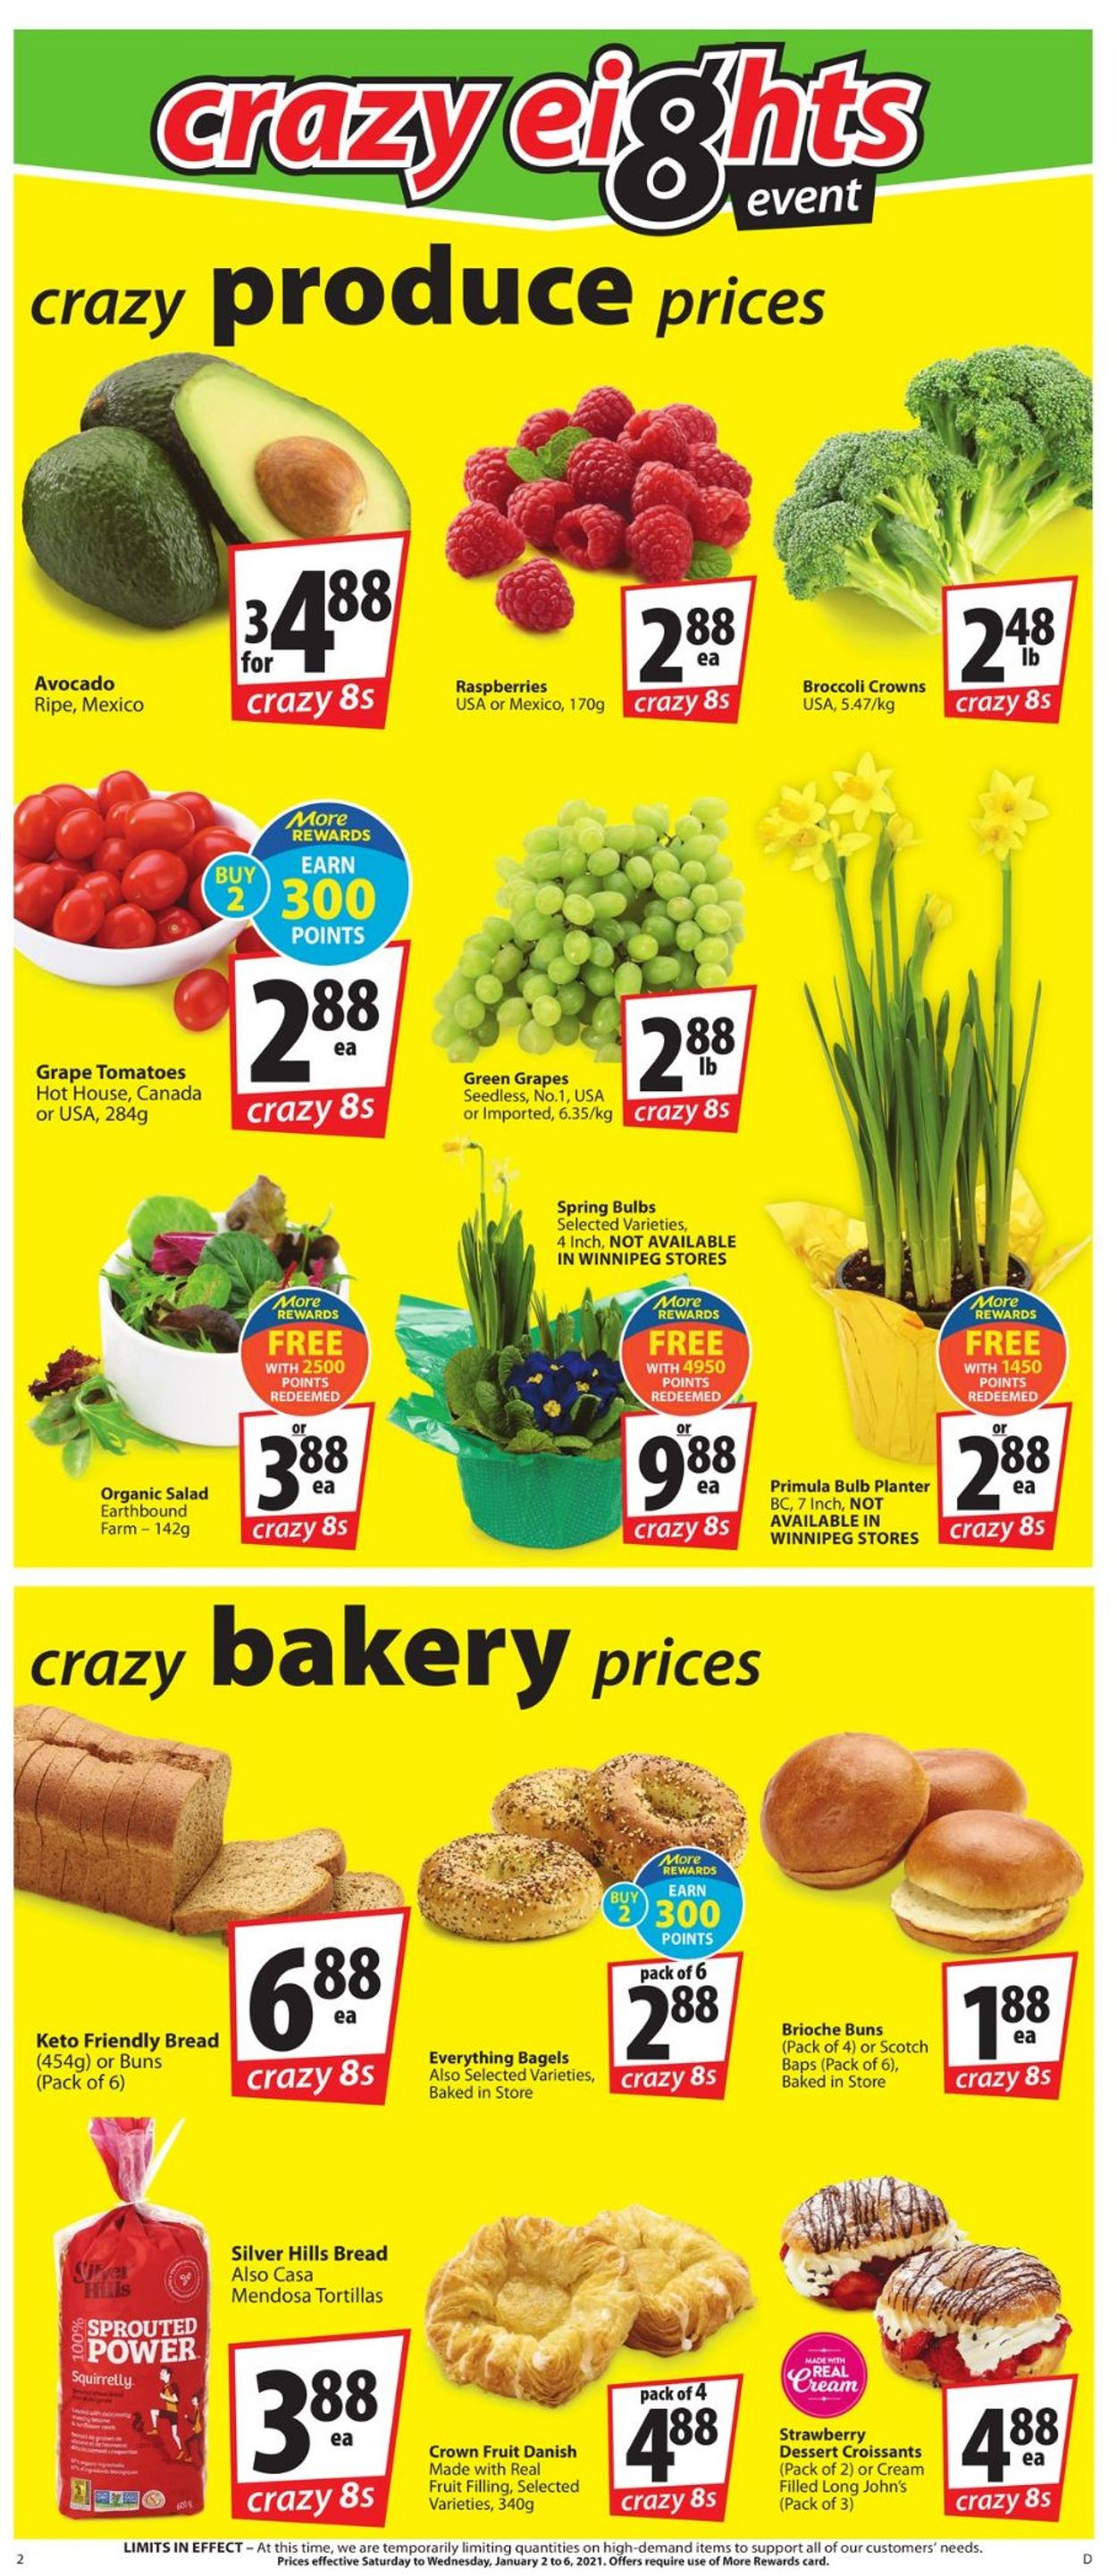 Save-On-Foods - Crazy Eigths 2021 Flyer - 01/02-01/06/2021 (Page 2)